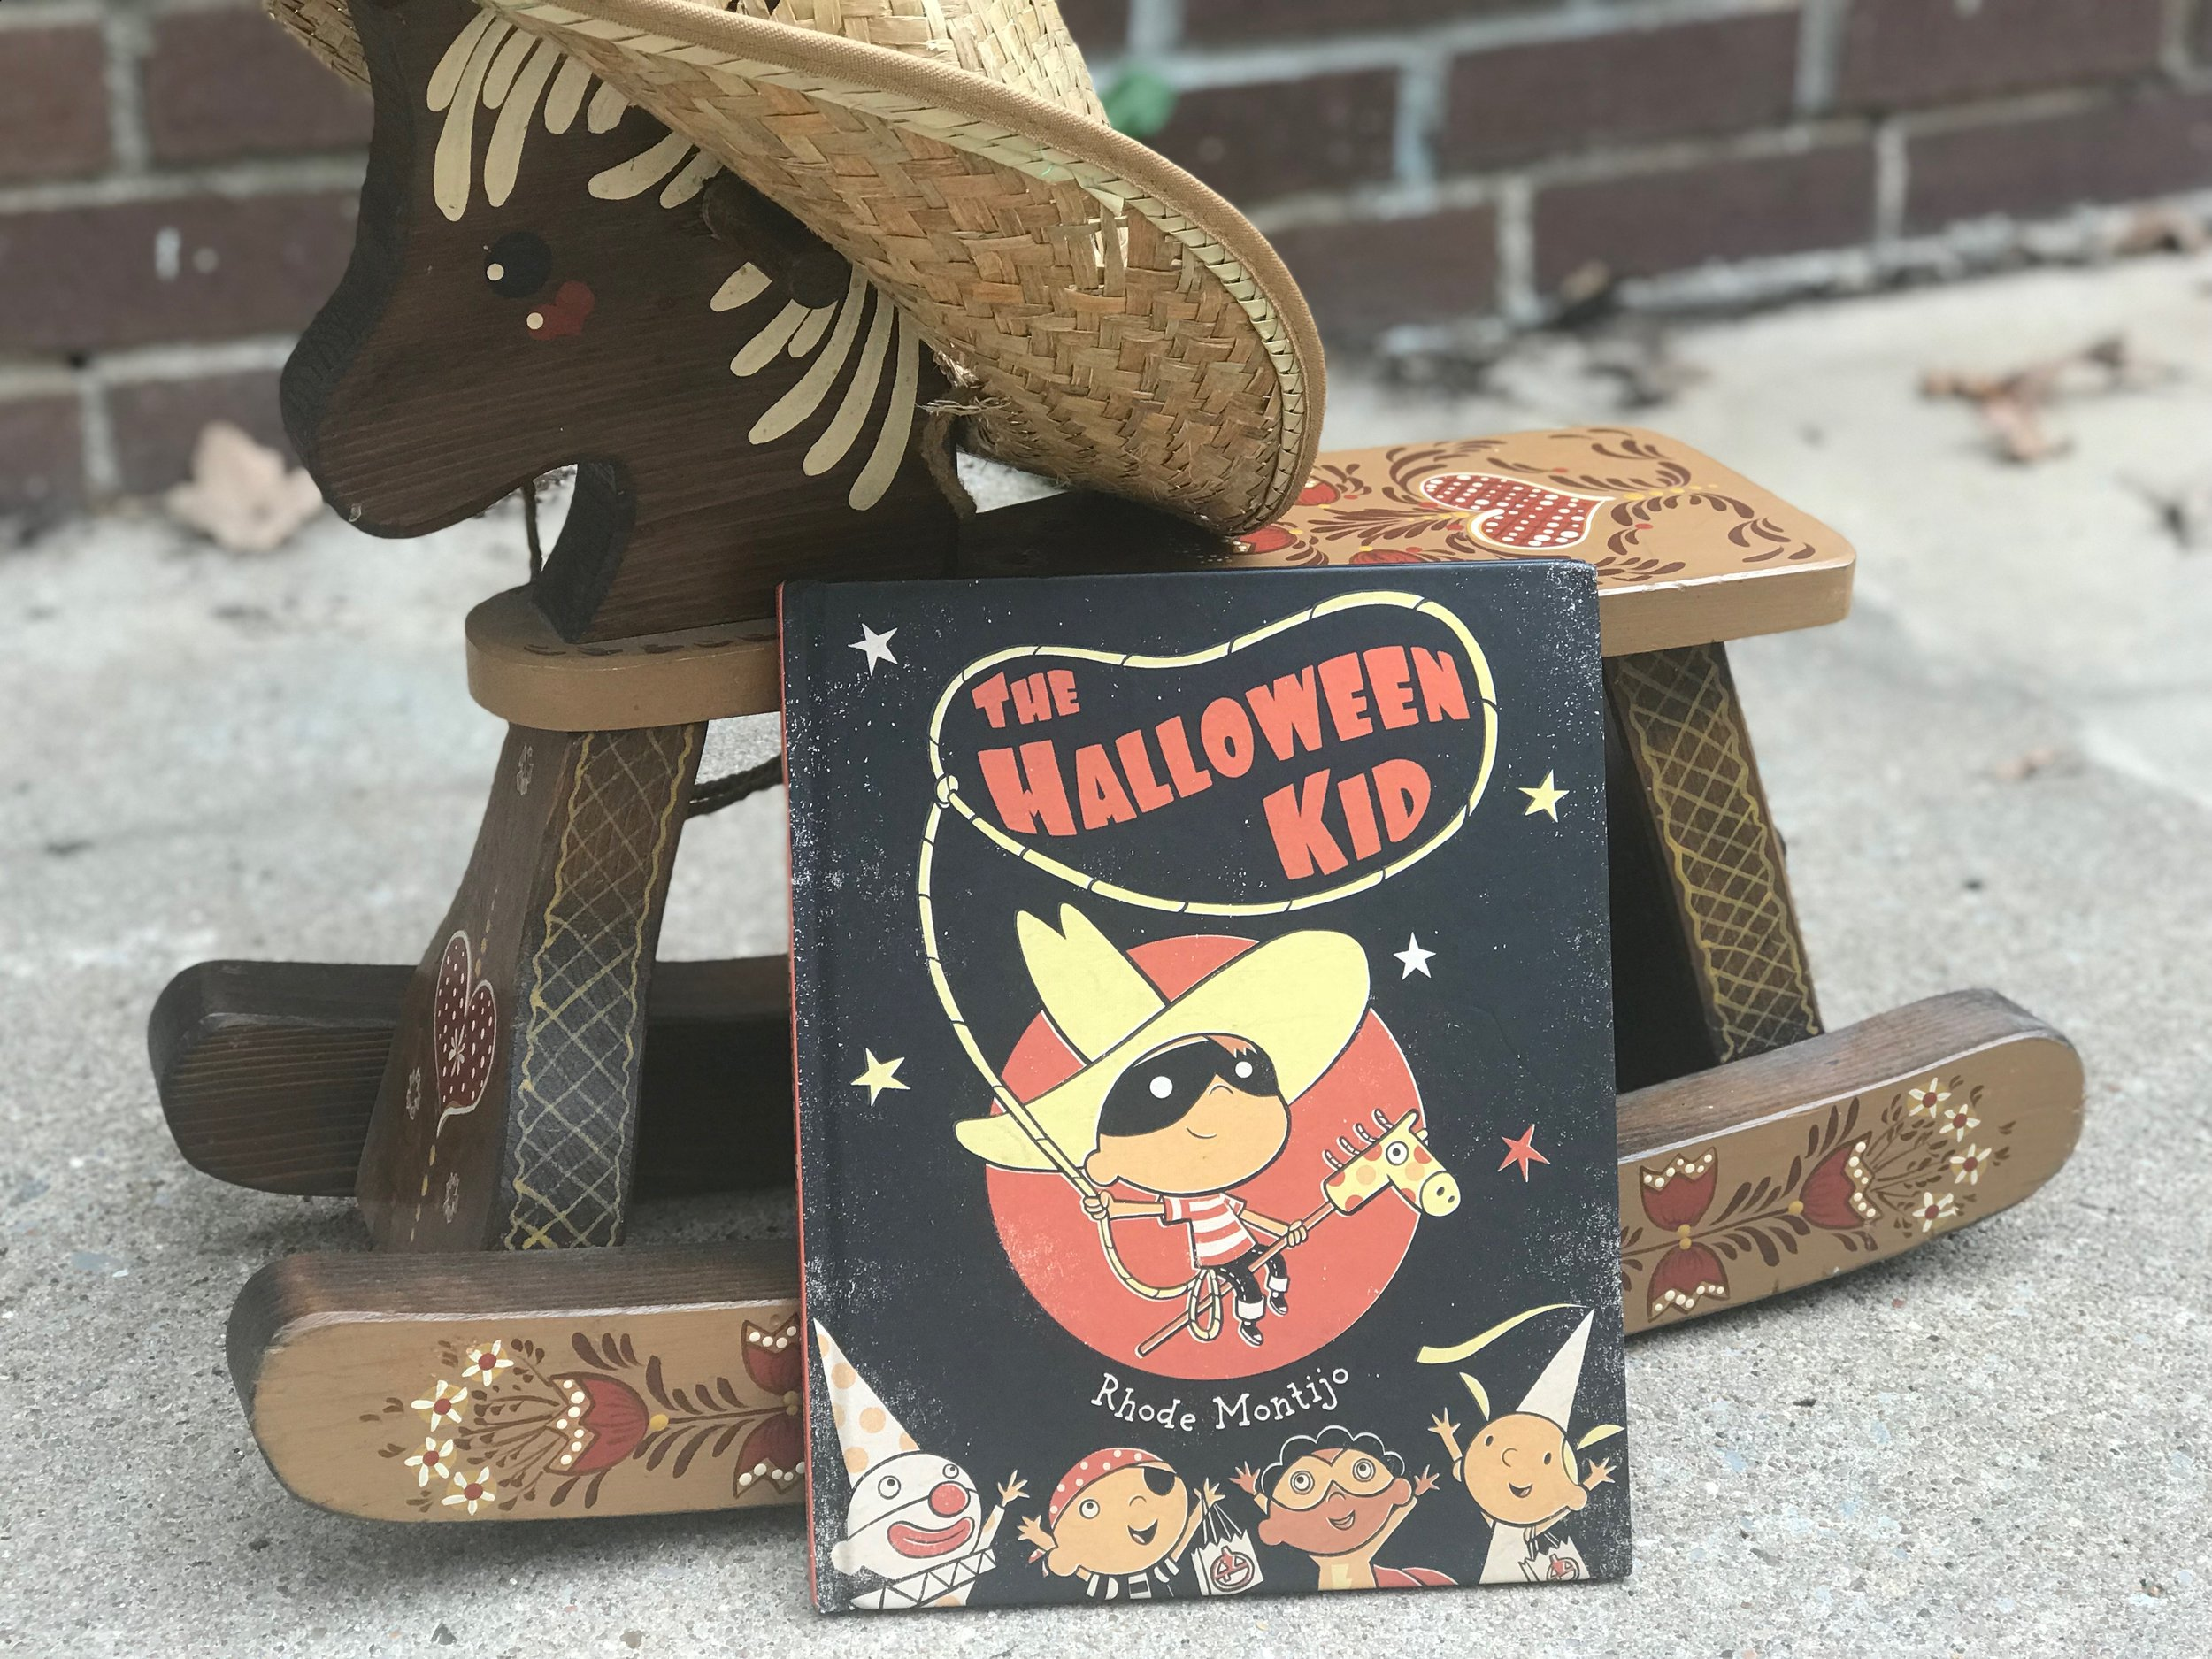 Sign up for the giveaway below and subscribe to our e-mail list for a chance to win The Halloween Kid.